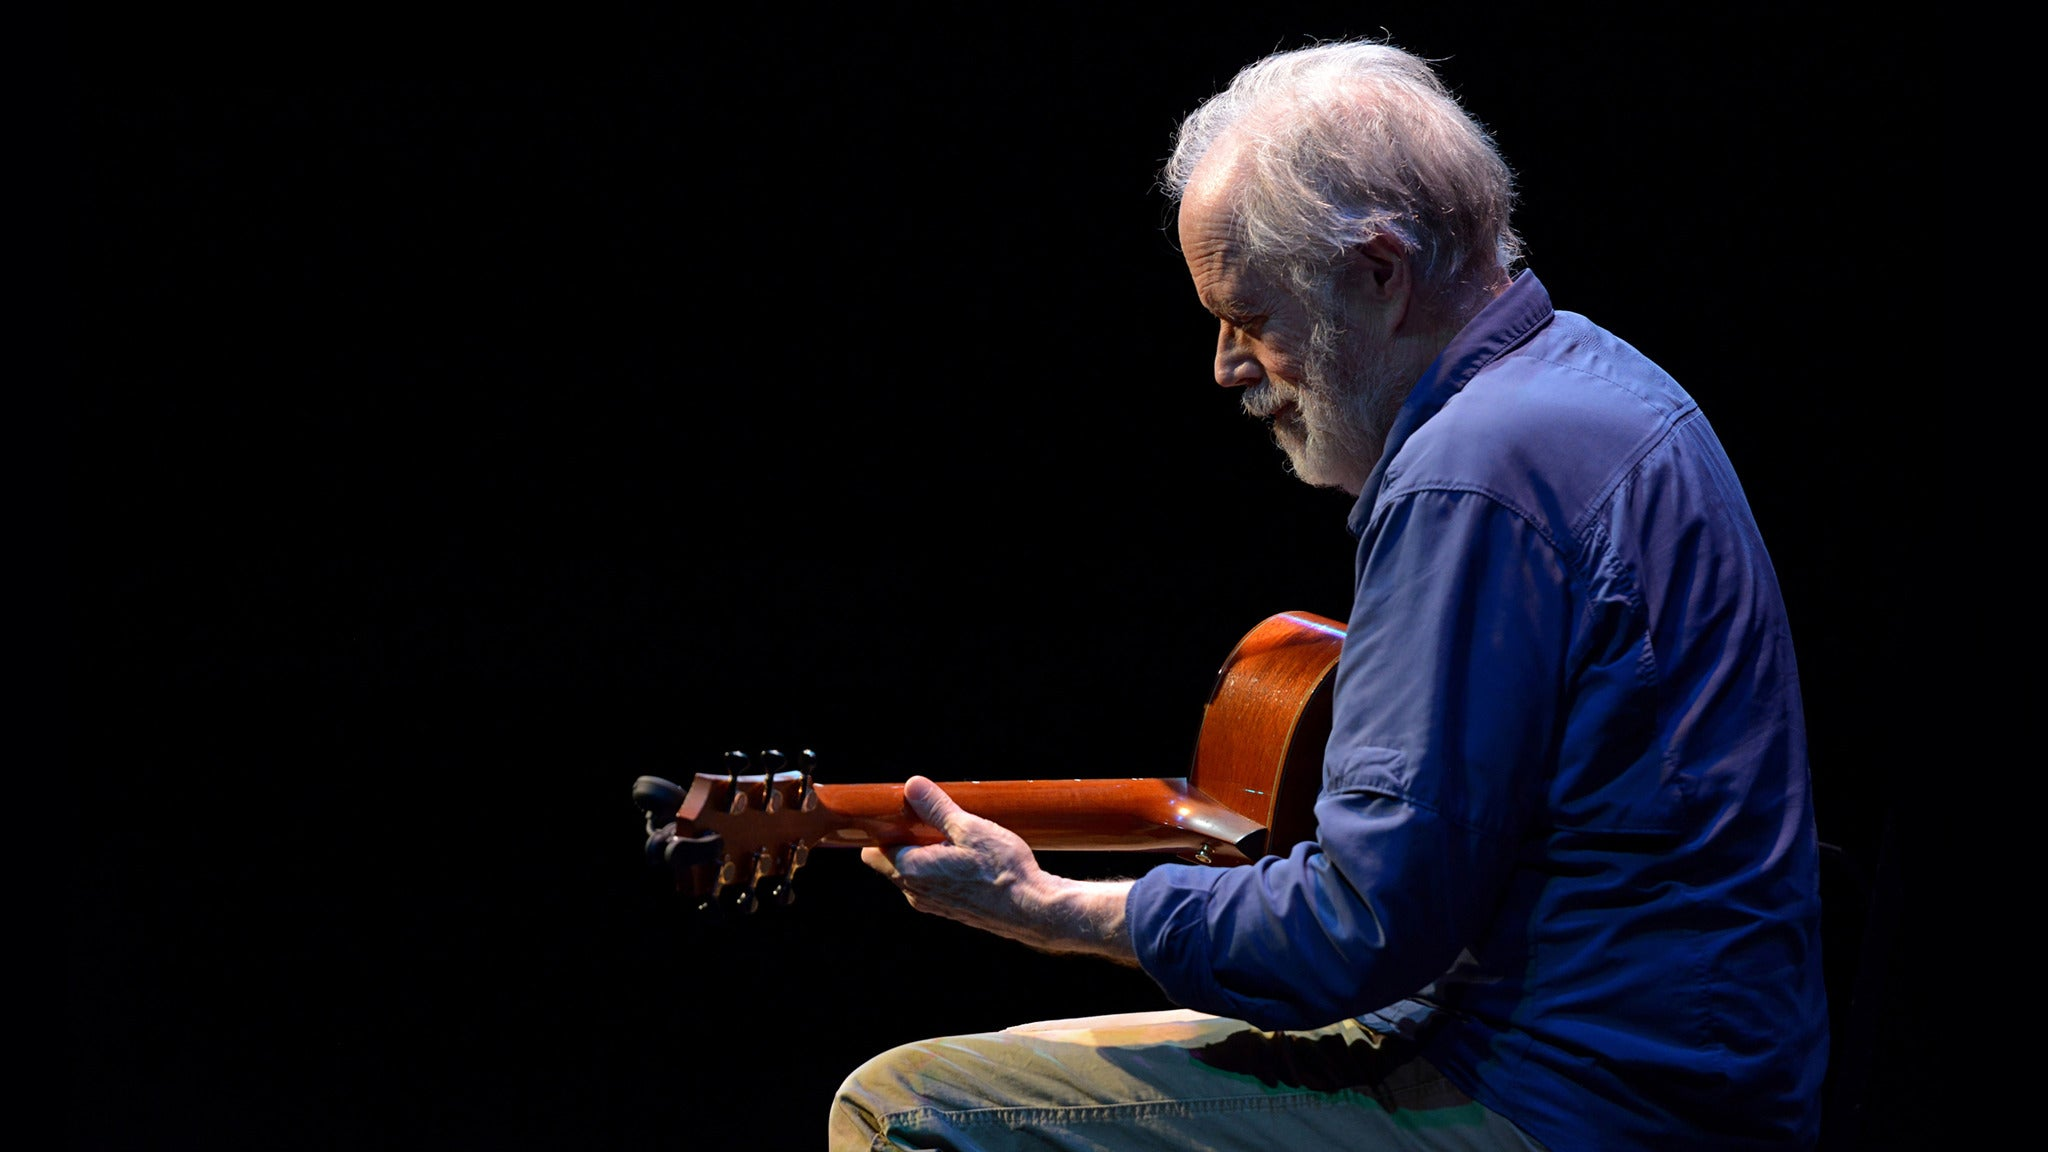 Leo Kottke at Tower Theatre - OR